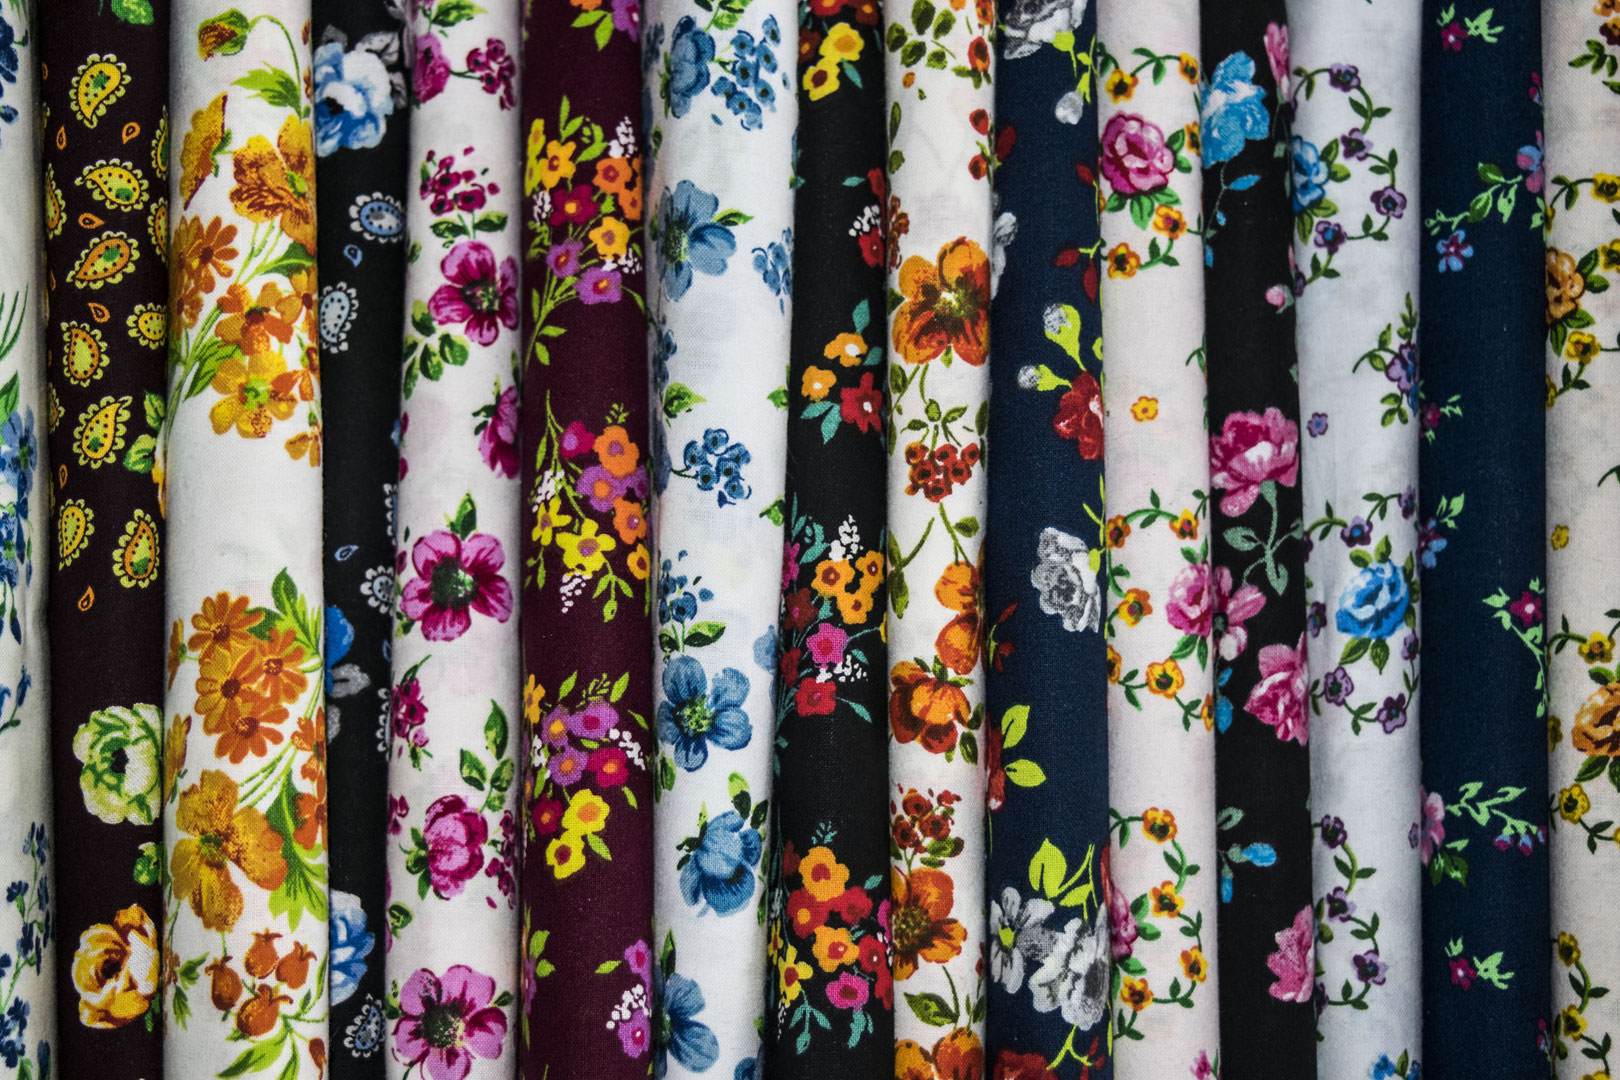 SPW 216: Floral